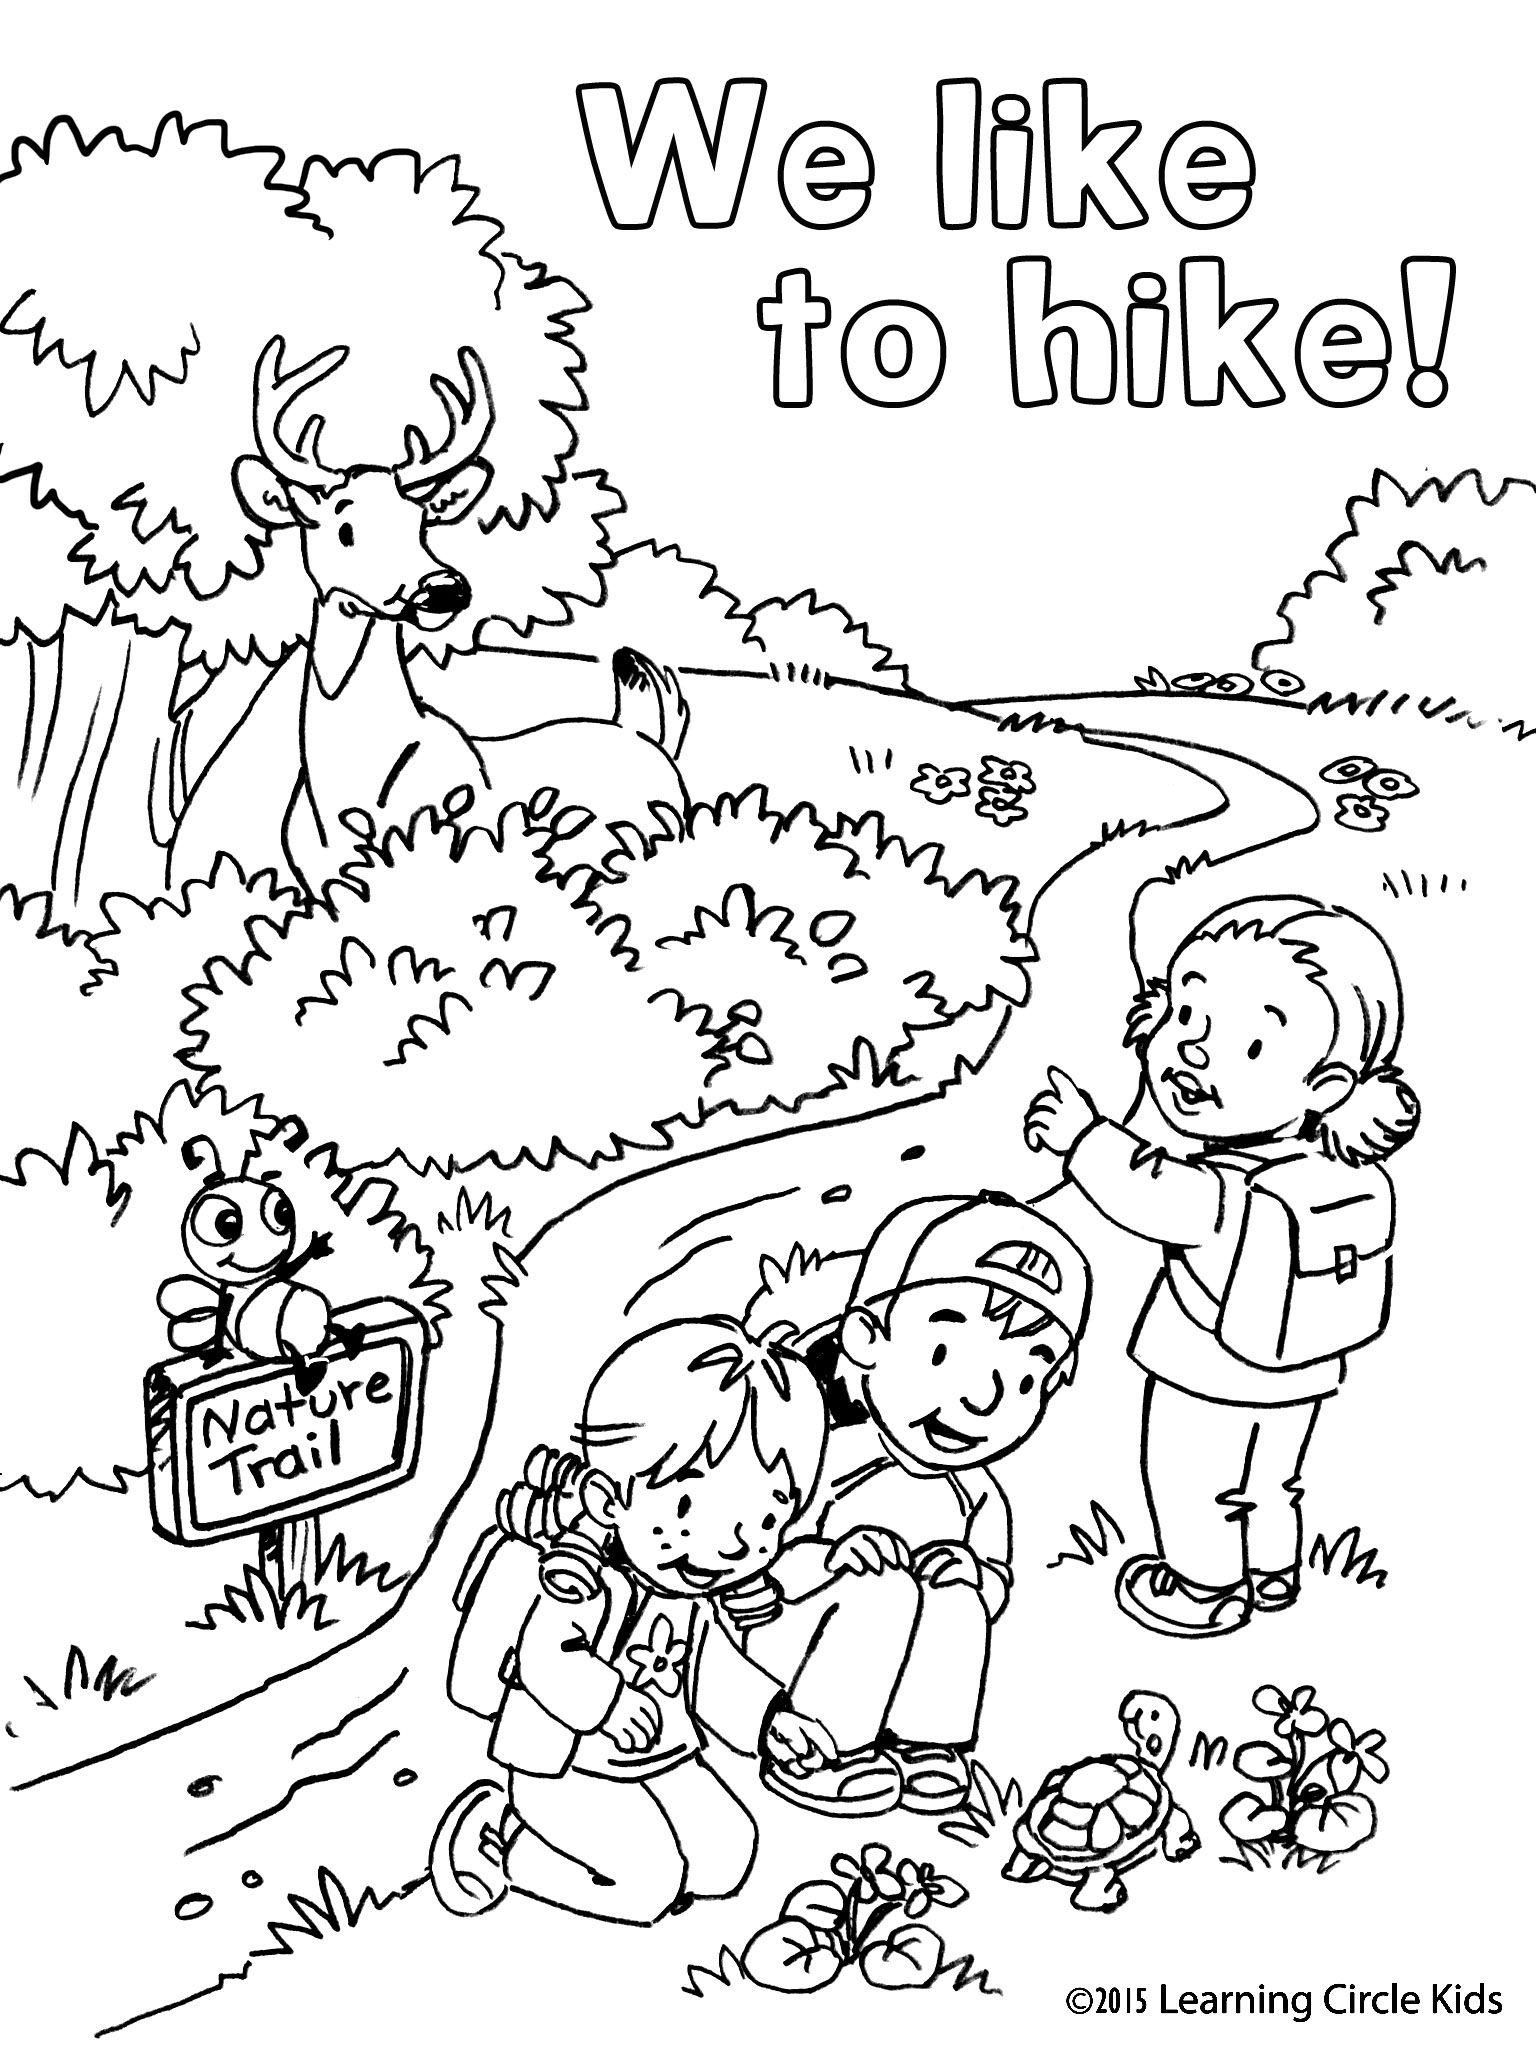 16 Free And Fun Coloring Pages Camping Coloring Pages Cool Coloring Pages Preschool Coloring Pages